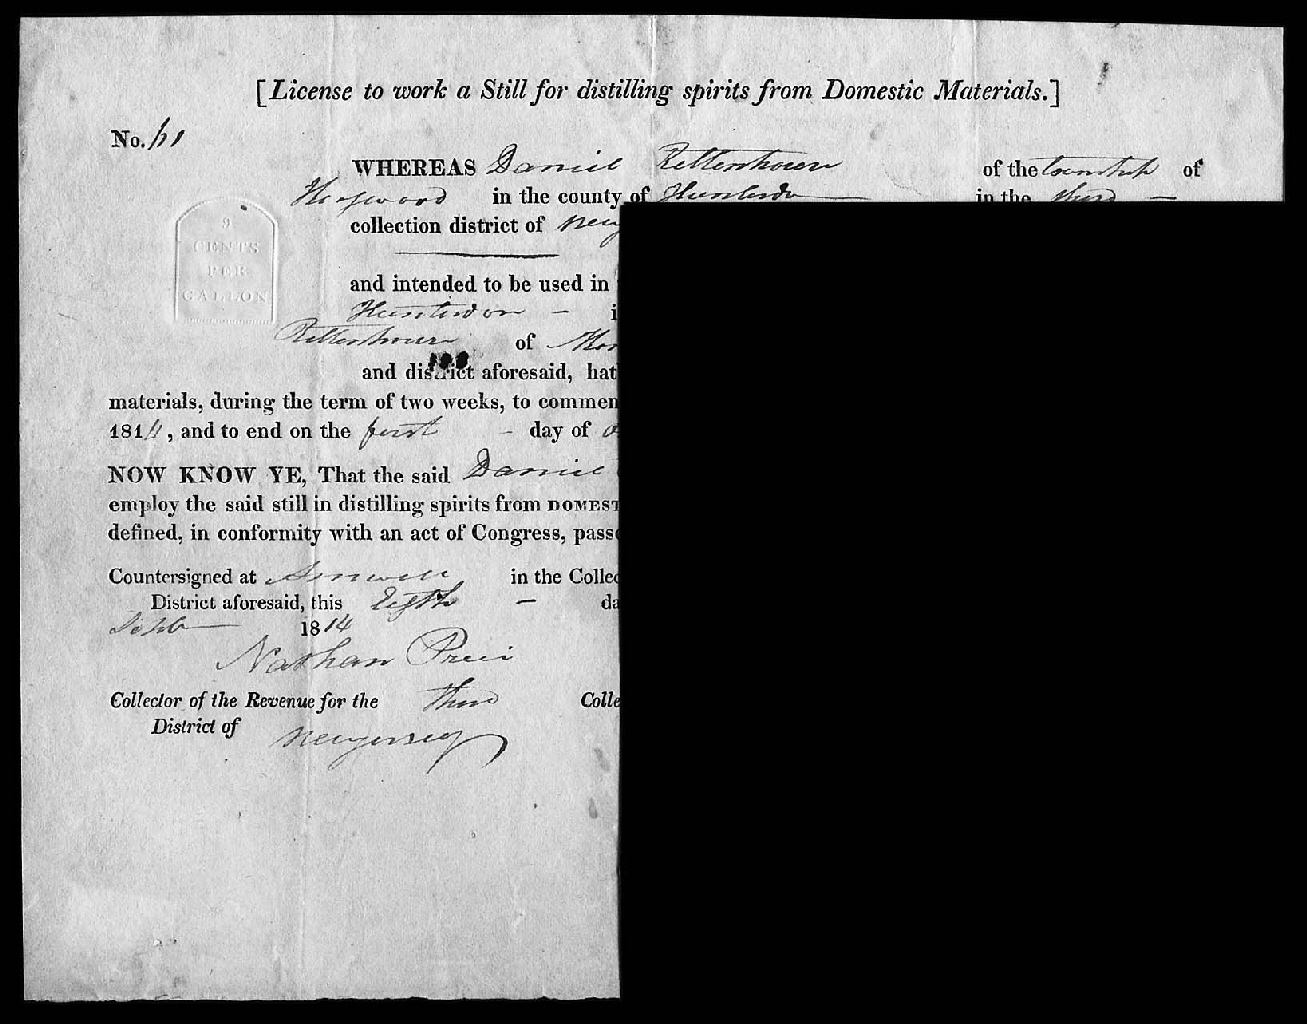 """9c Federal License to Work a Still (RM468a), sharp clear embossed impression on Sept. 8, 1816 partly printed license to """"work a still for distilling spirits from Domestic Materials,"""" 9¾x7¾"""", usual light file folds, few small paper erosions, otherwise very fine, very scarce, rarely offered, Scott retail $1,250.00   photo"""